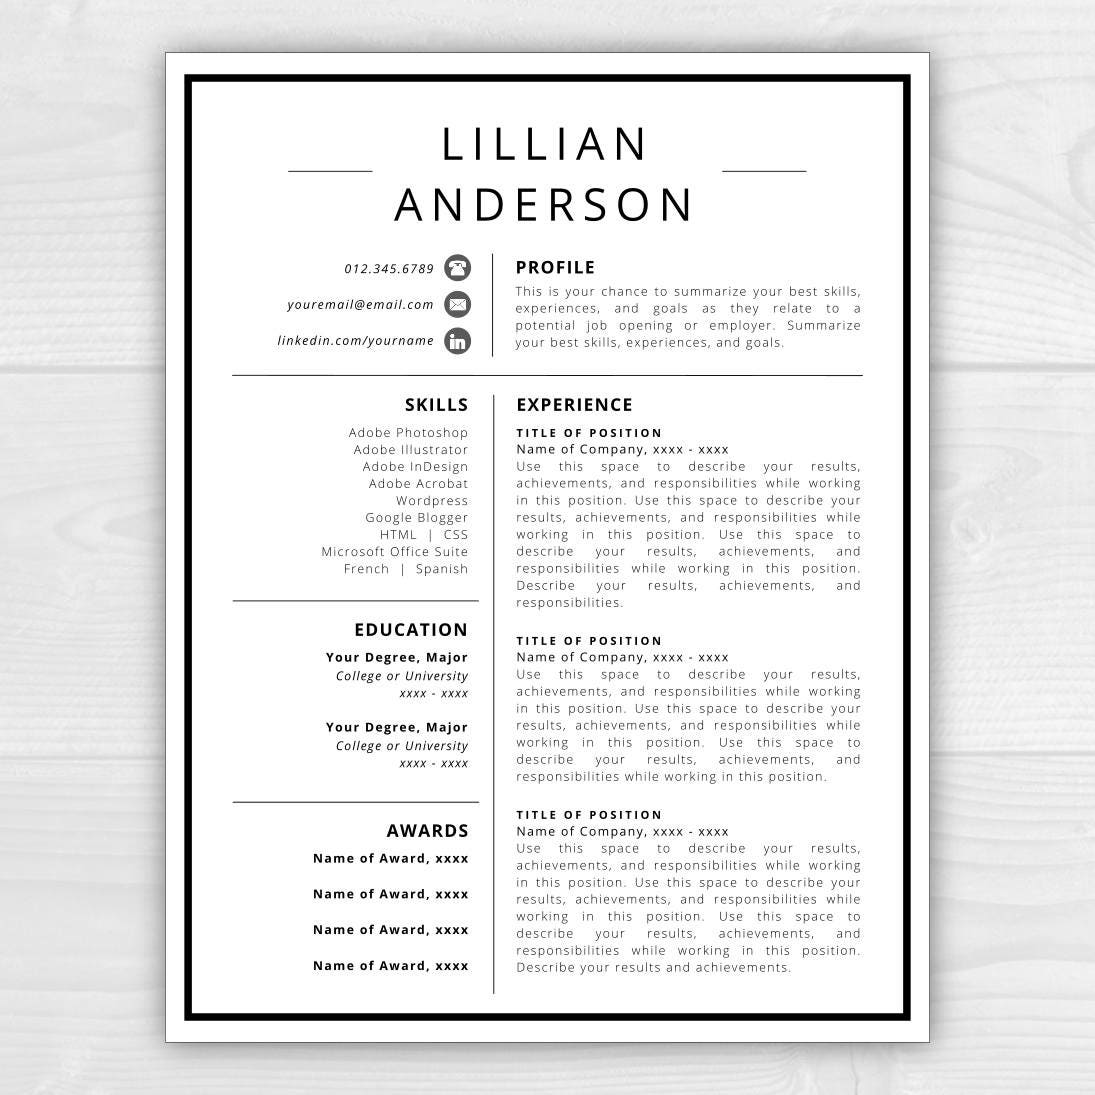 free resume icons for word - Free Resume Icons